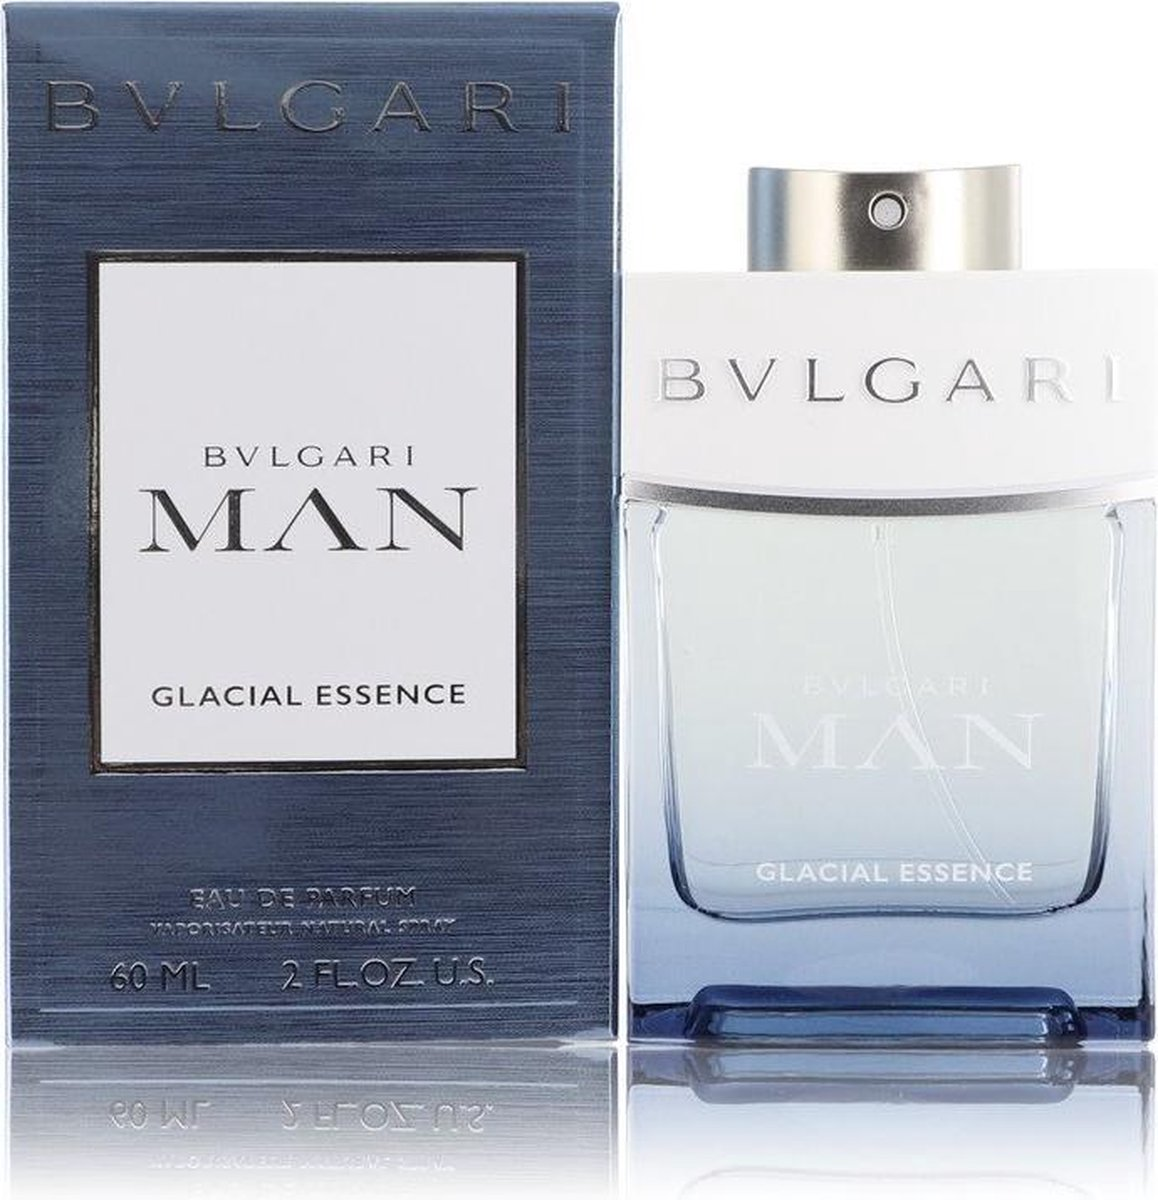 Bvlgari Man Glacial Essence Eau de parfum spray 60 ml